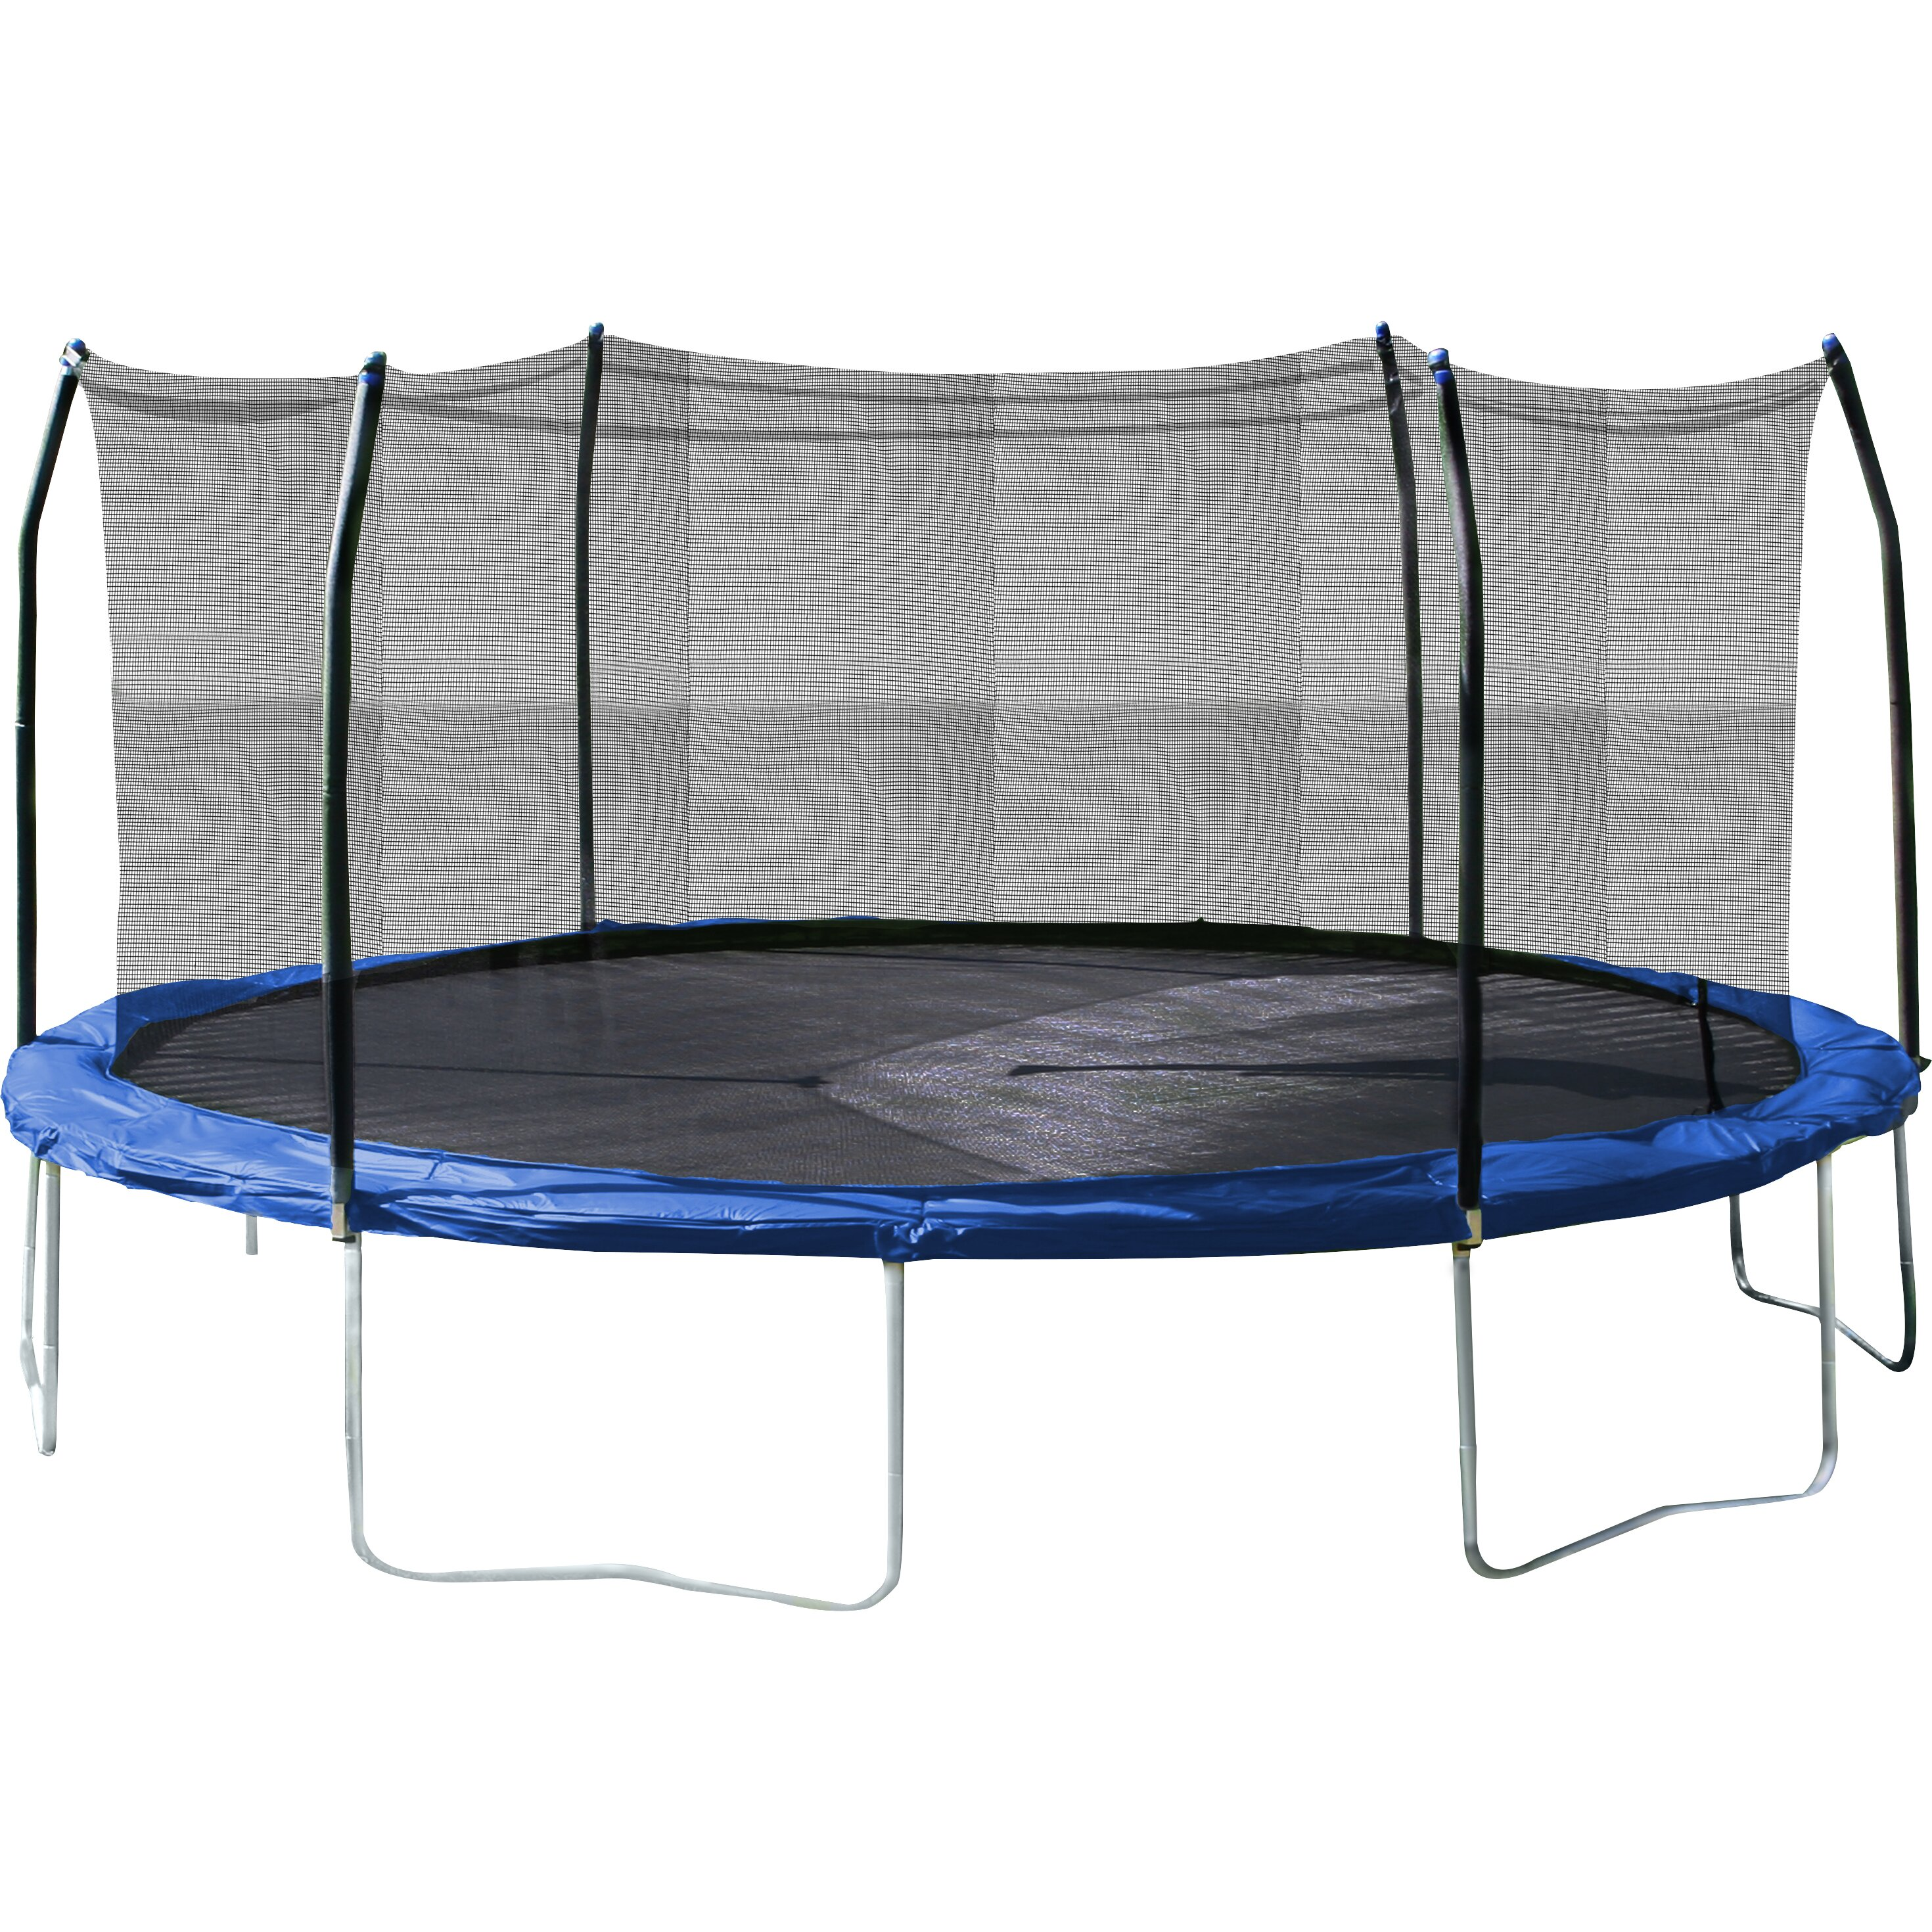 15 X 17 Oval Trampoline Safety Net Fits: 17' X 15' Oval Trampoline With Safety Enclosure